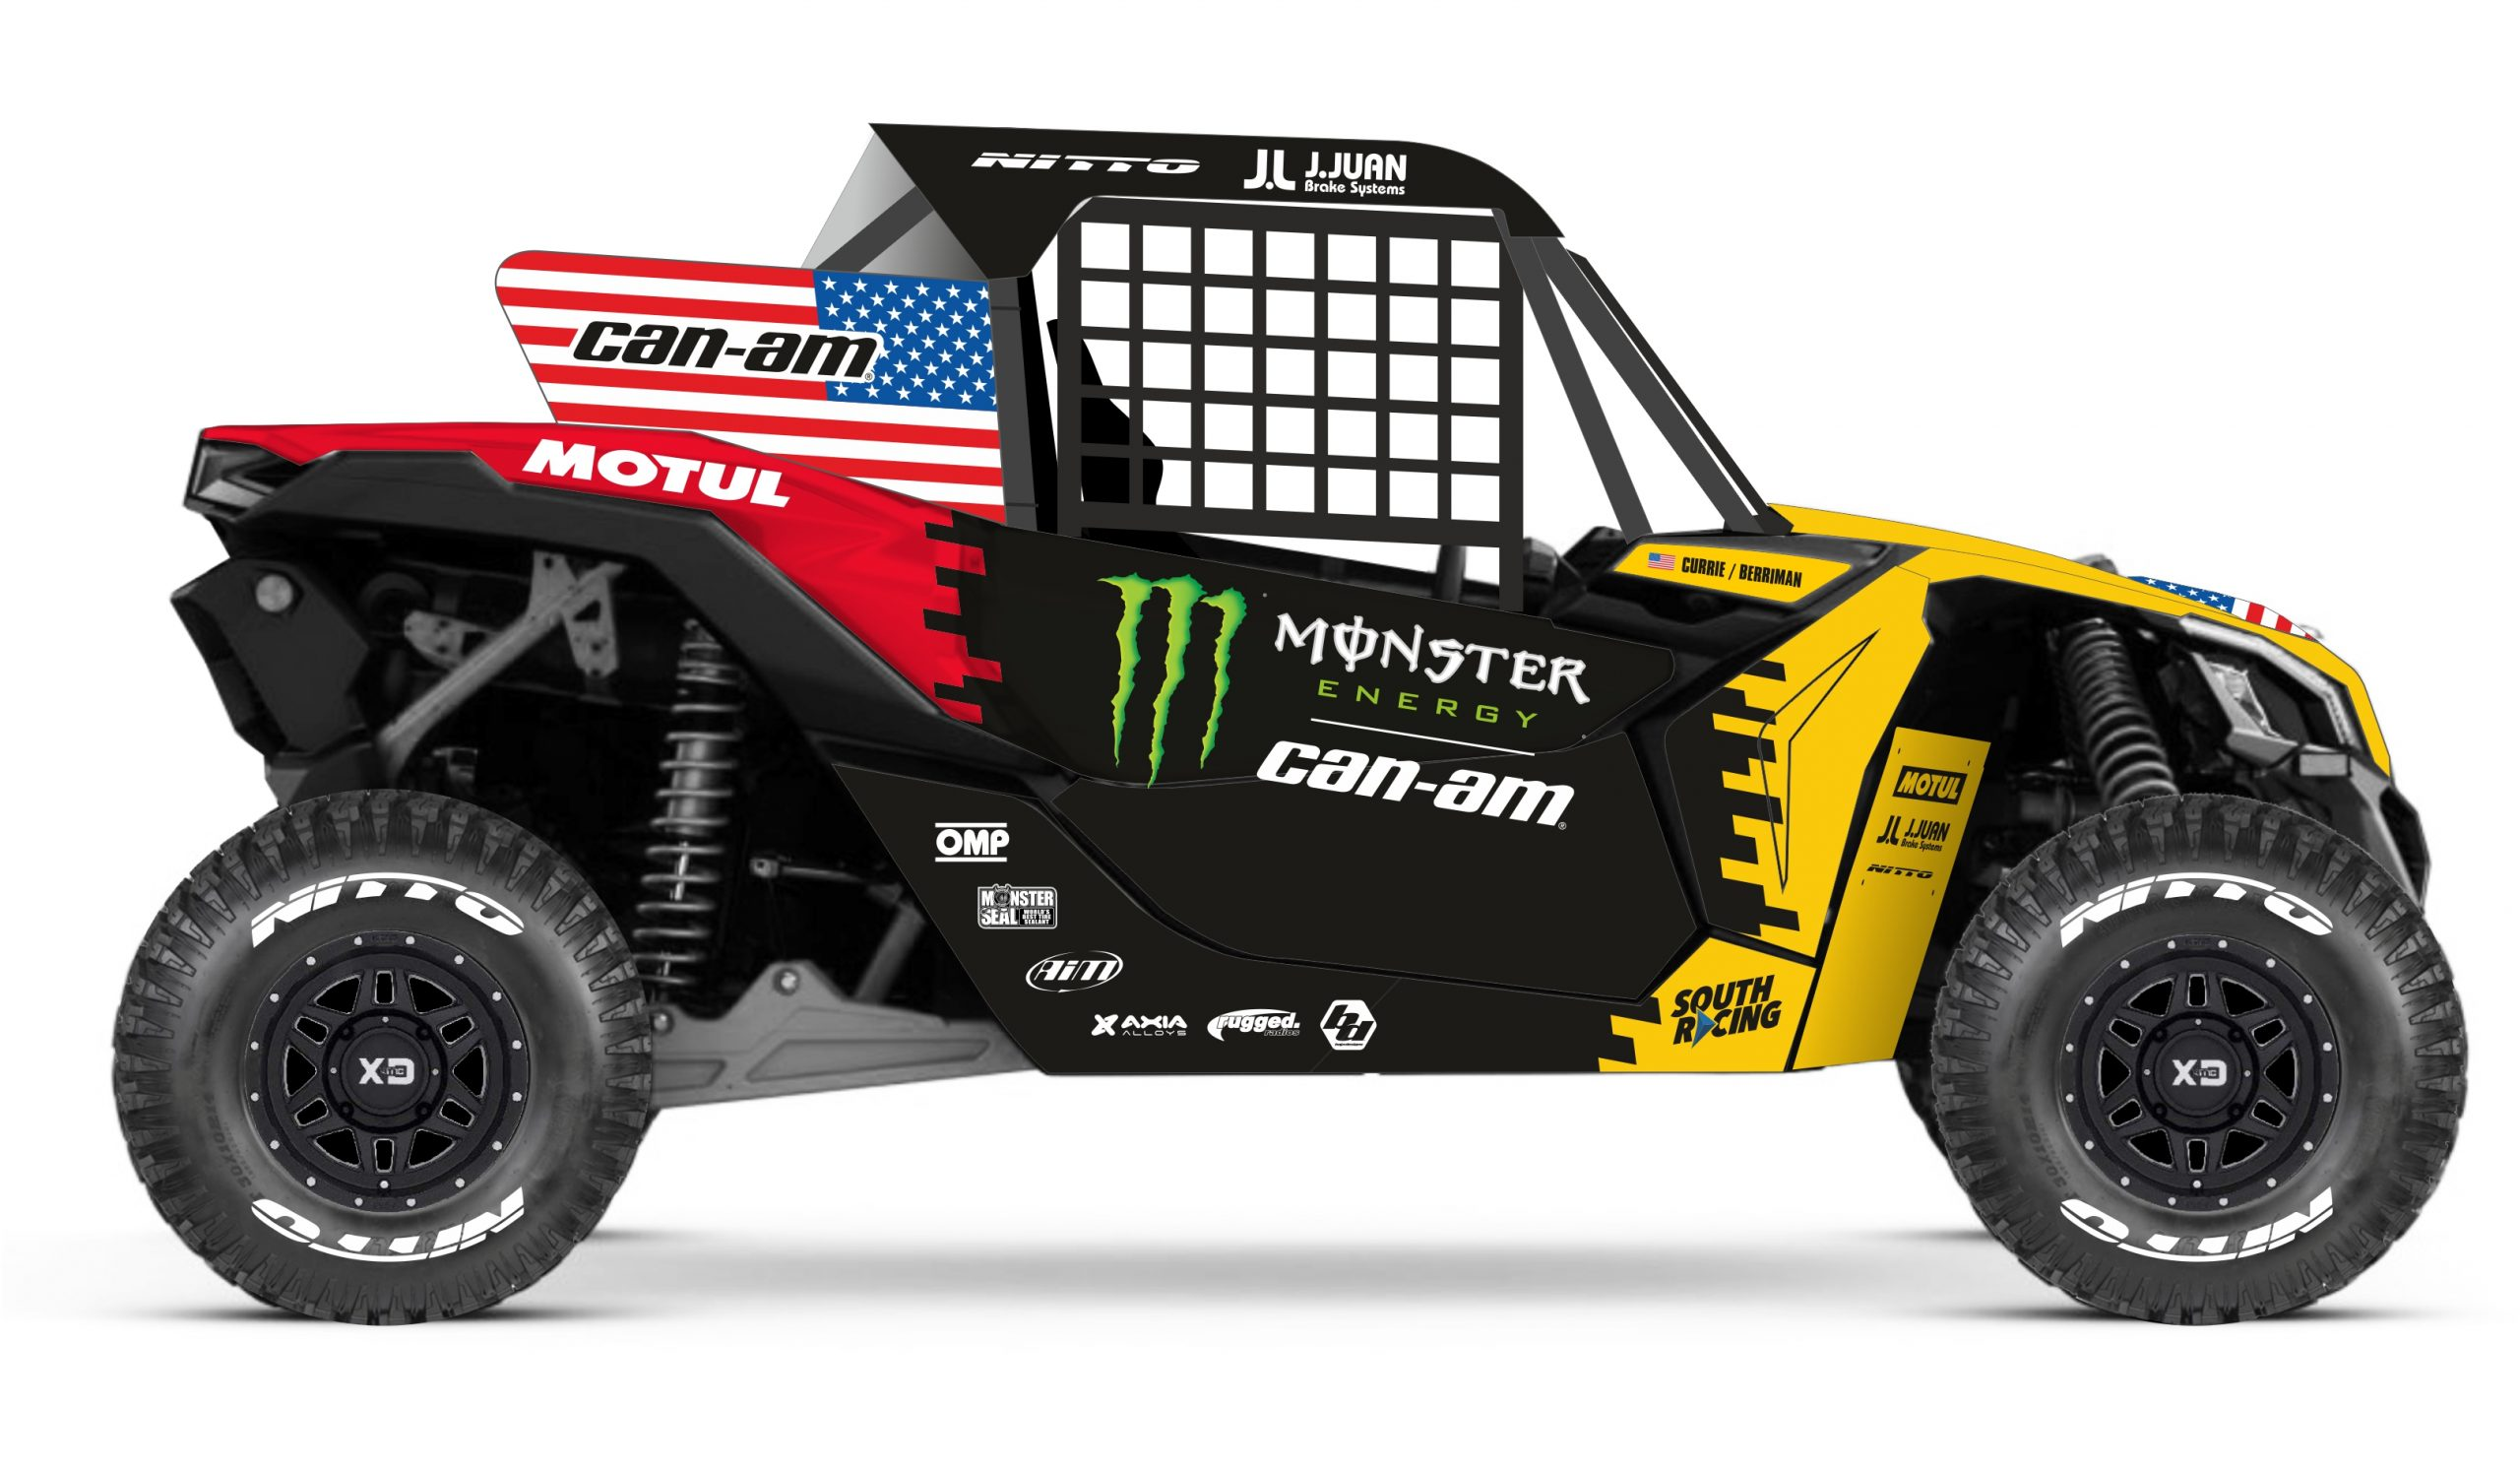 Motul South Racing Can-Am Factory Team